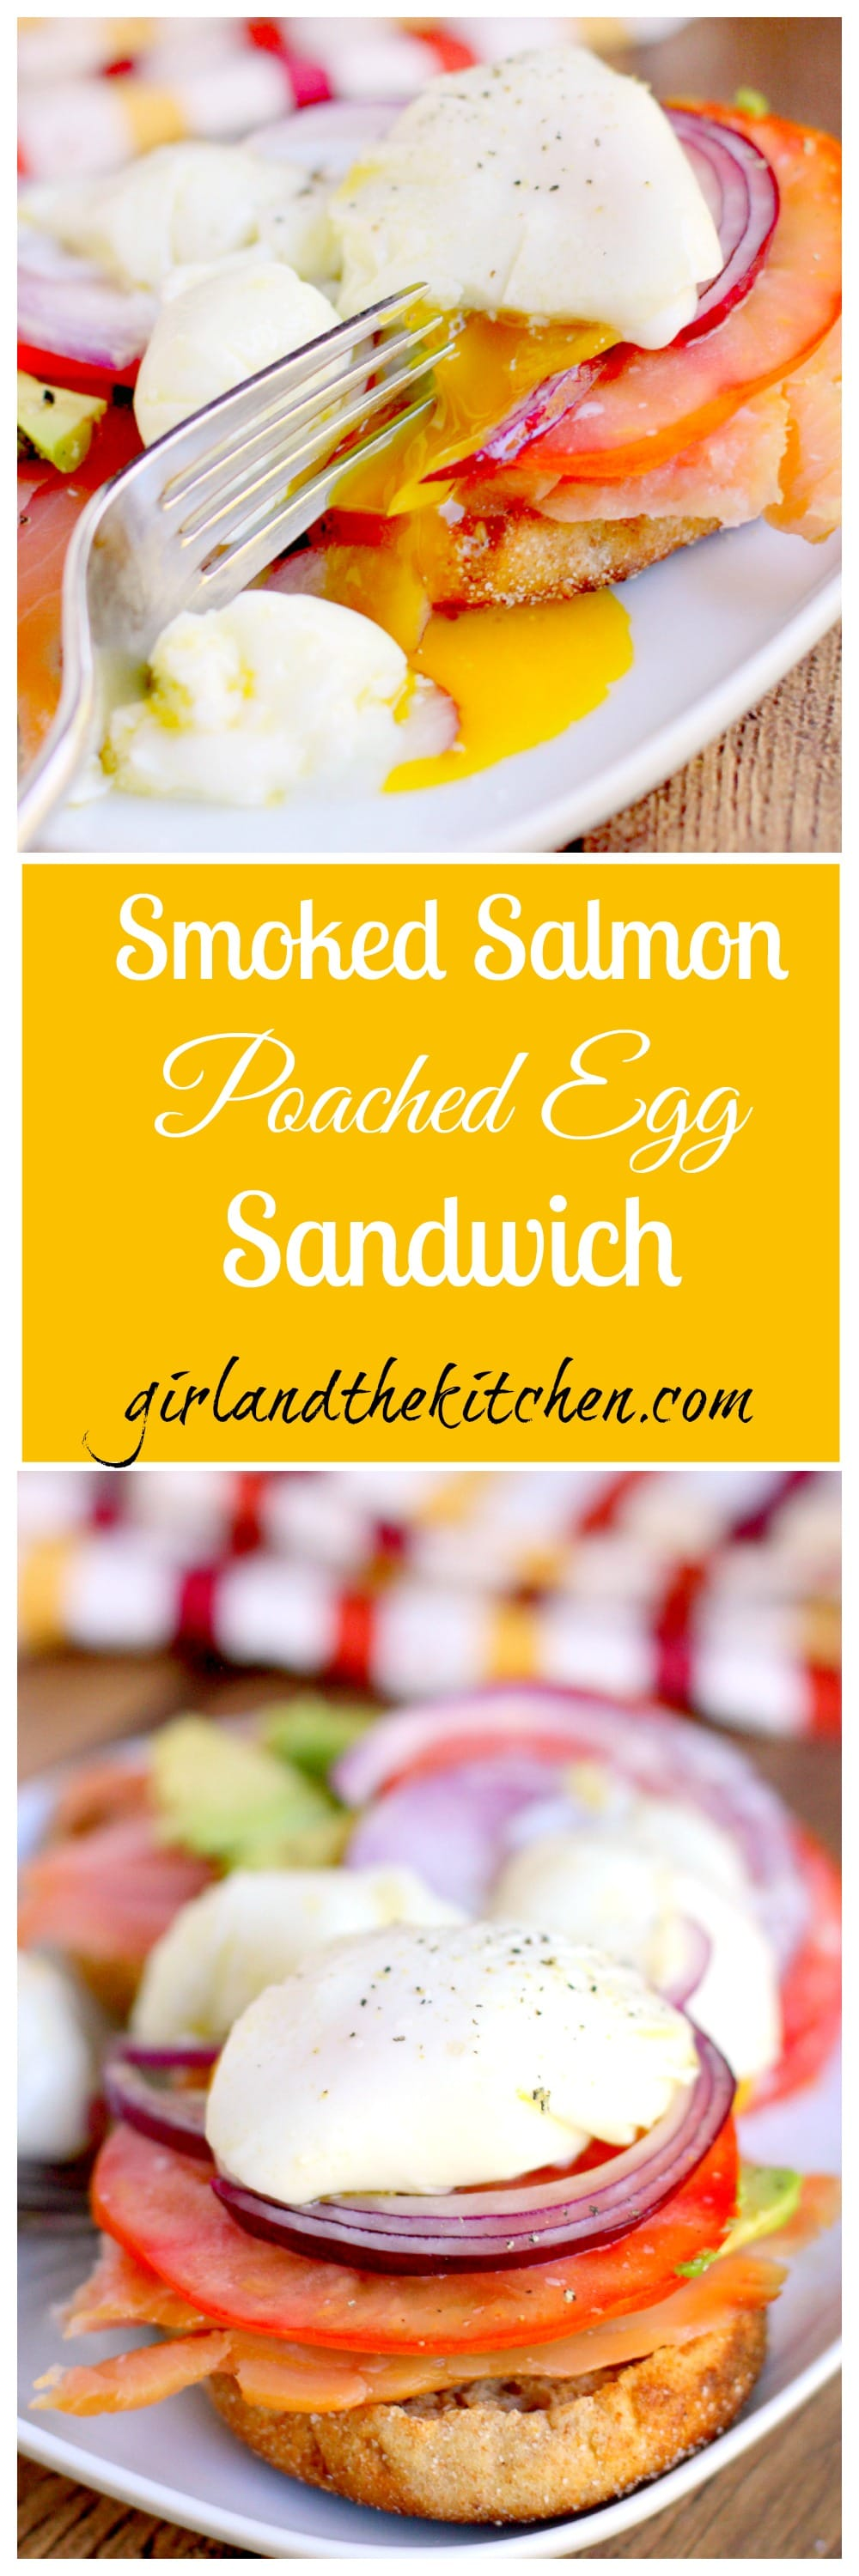 This smoked salmon and poached egg sandwich is both elegant and delicious! This classic egg breakfast sandwich features smoked salmon and a poached egg!